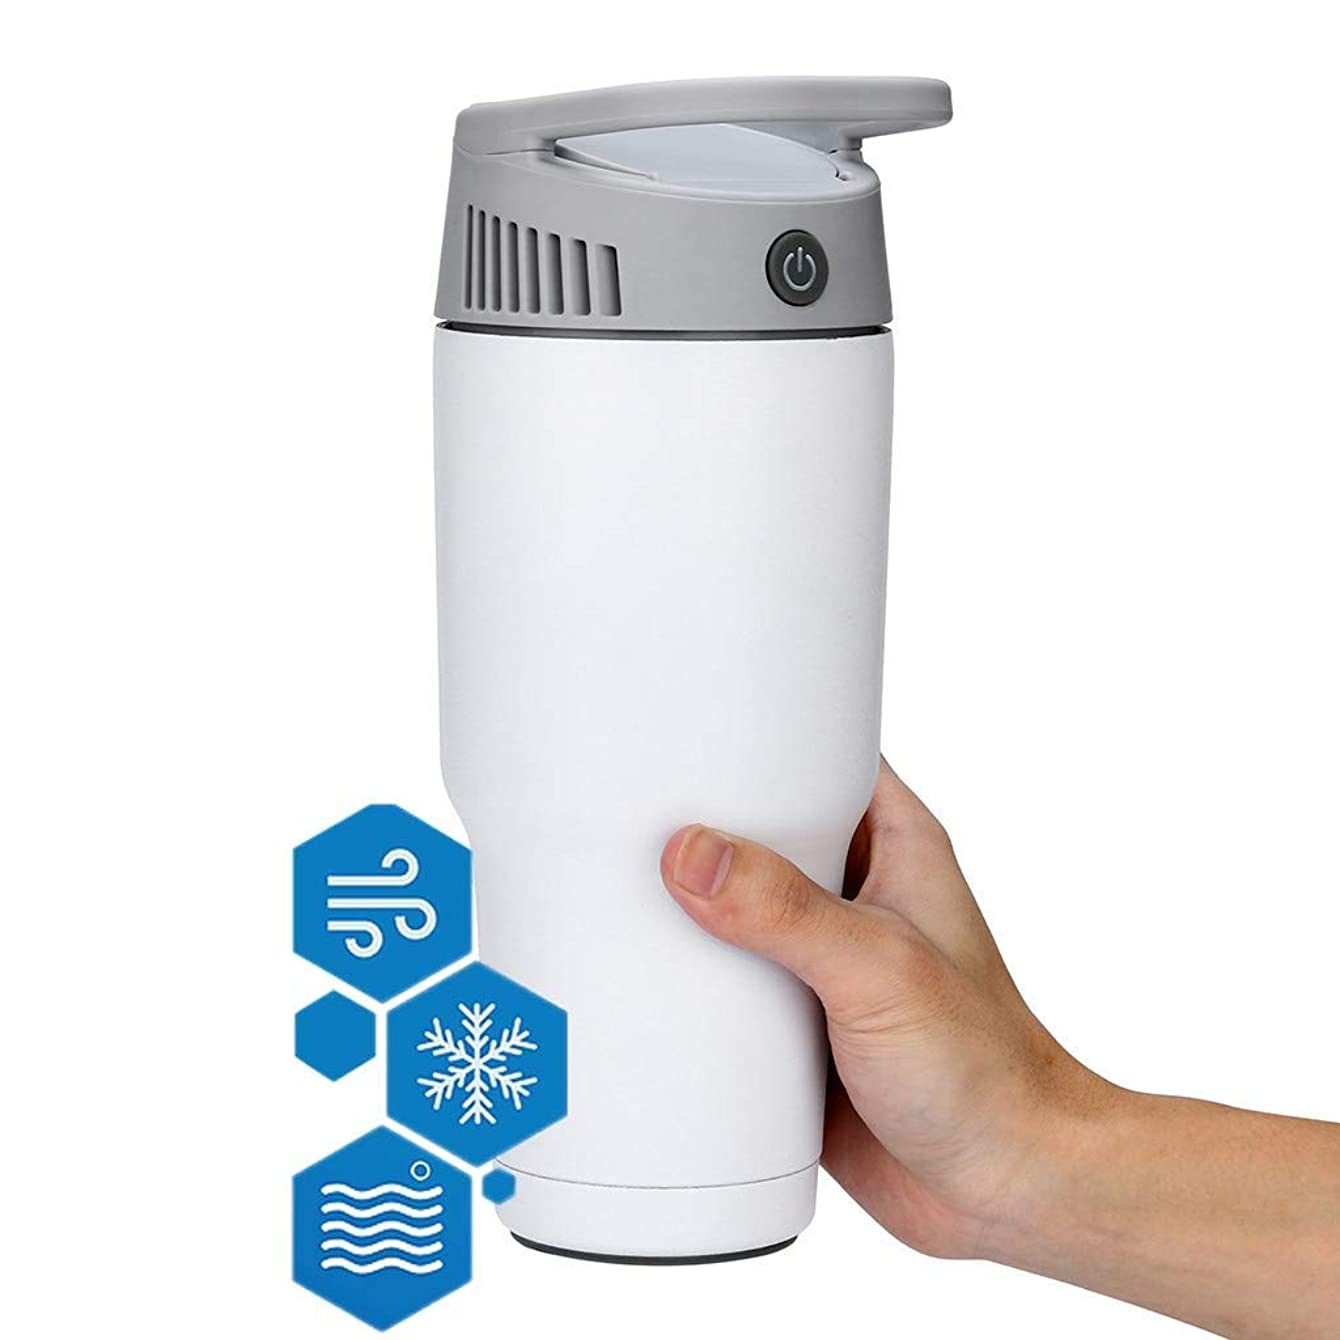 ZNQY Portable Aircon, Air Conditioner Cooler, 3 Speeds Office fits in Household Outdoors, Most Cup Holders, Backpacks, Desktop Cooling Fan for Office Household Outdoors